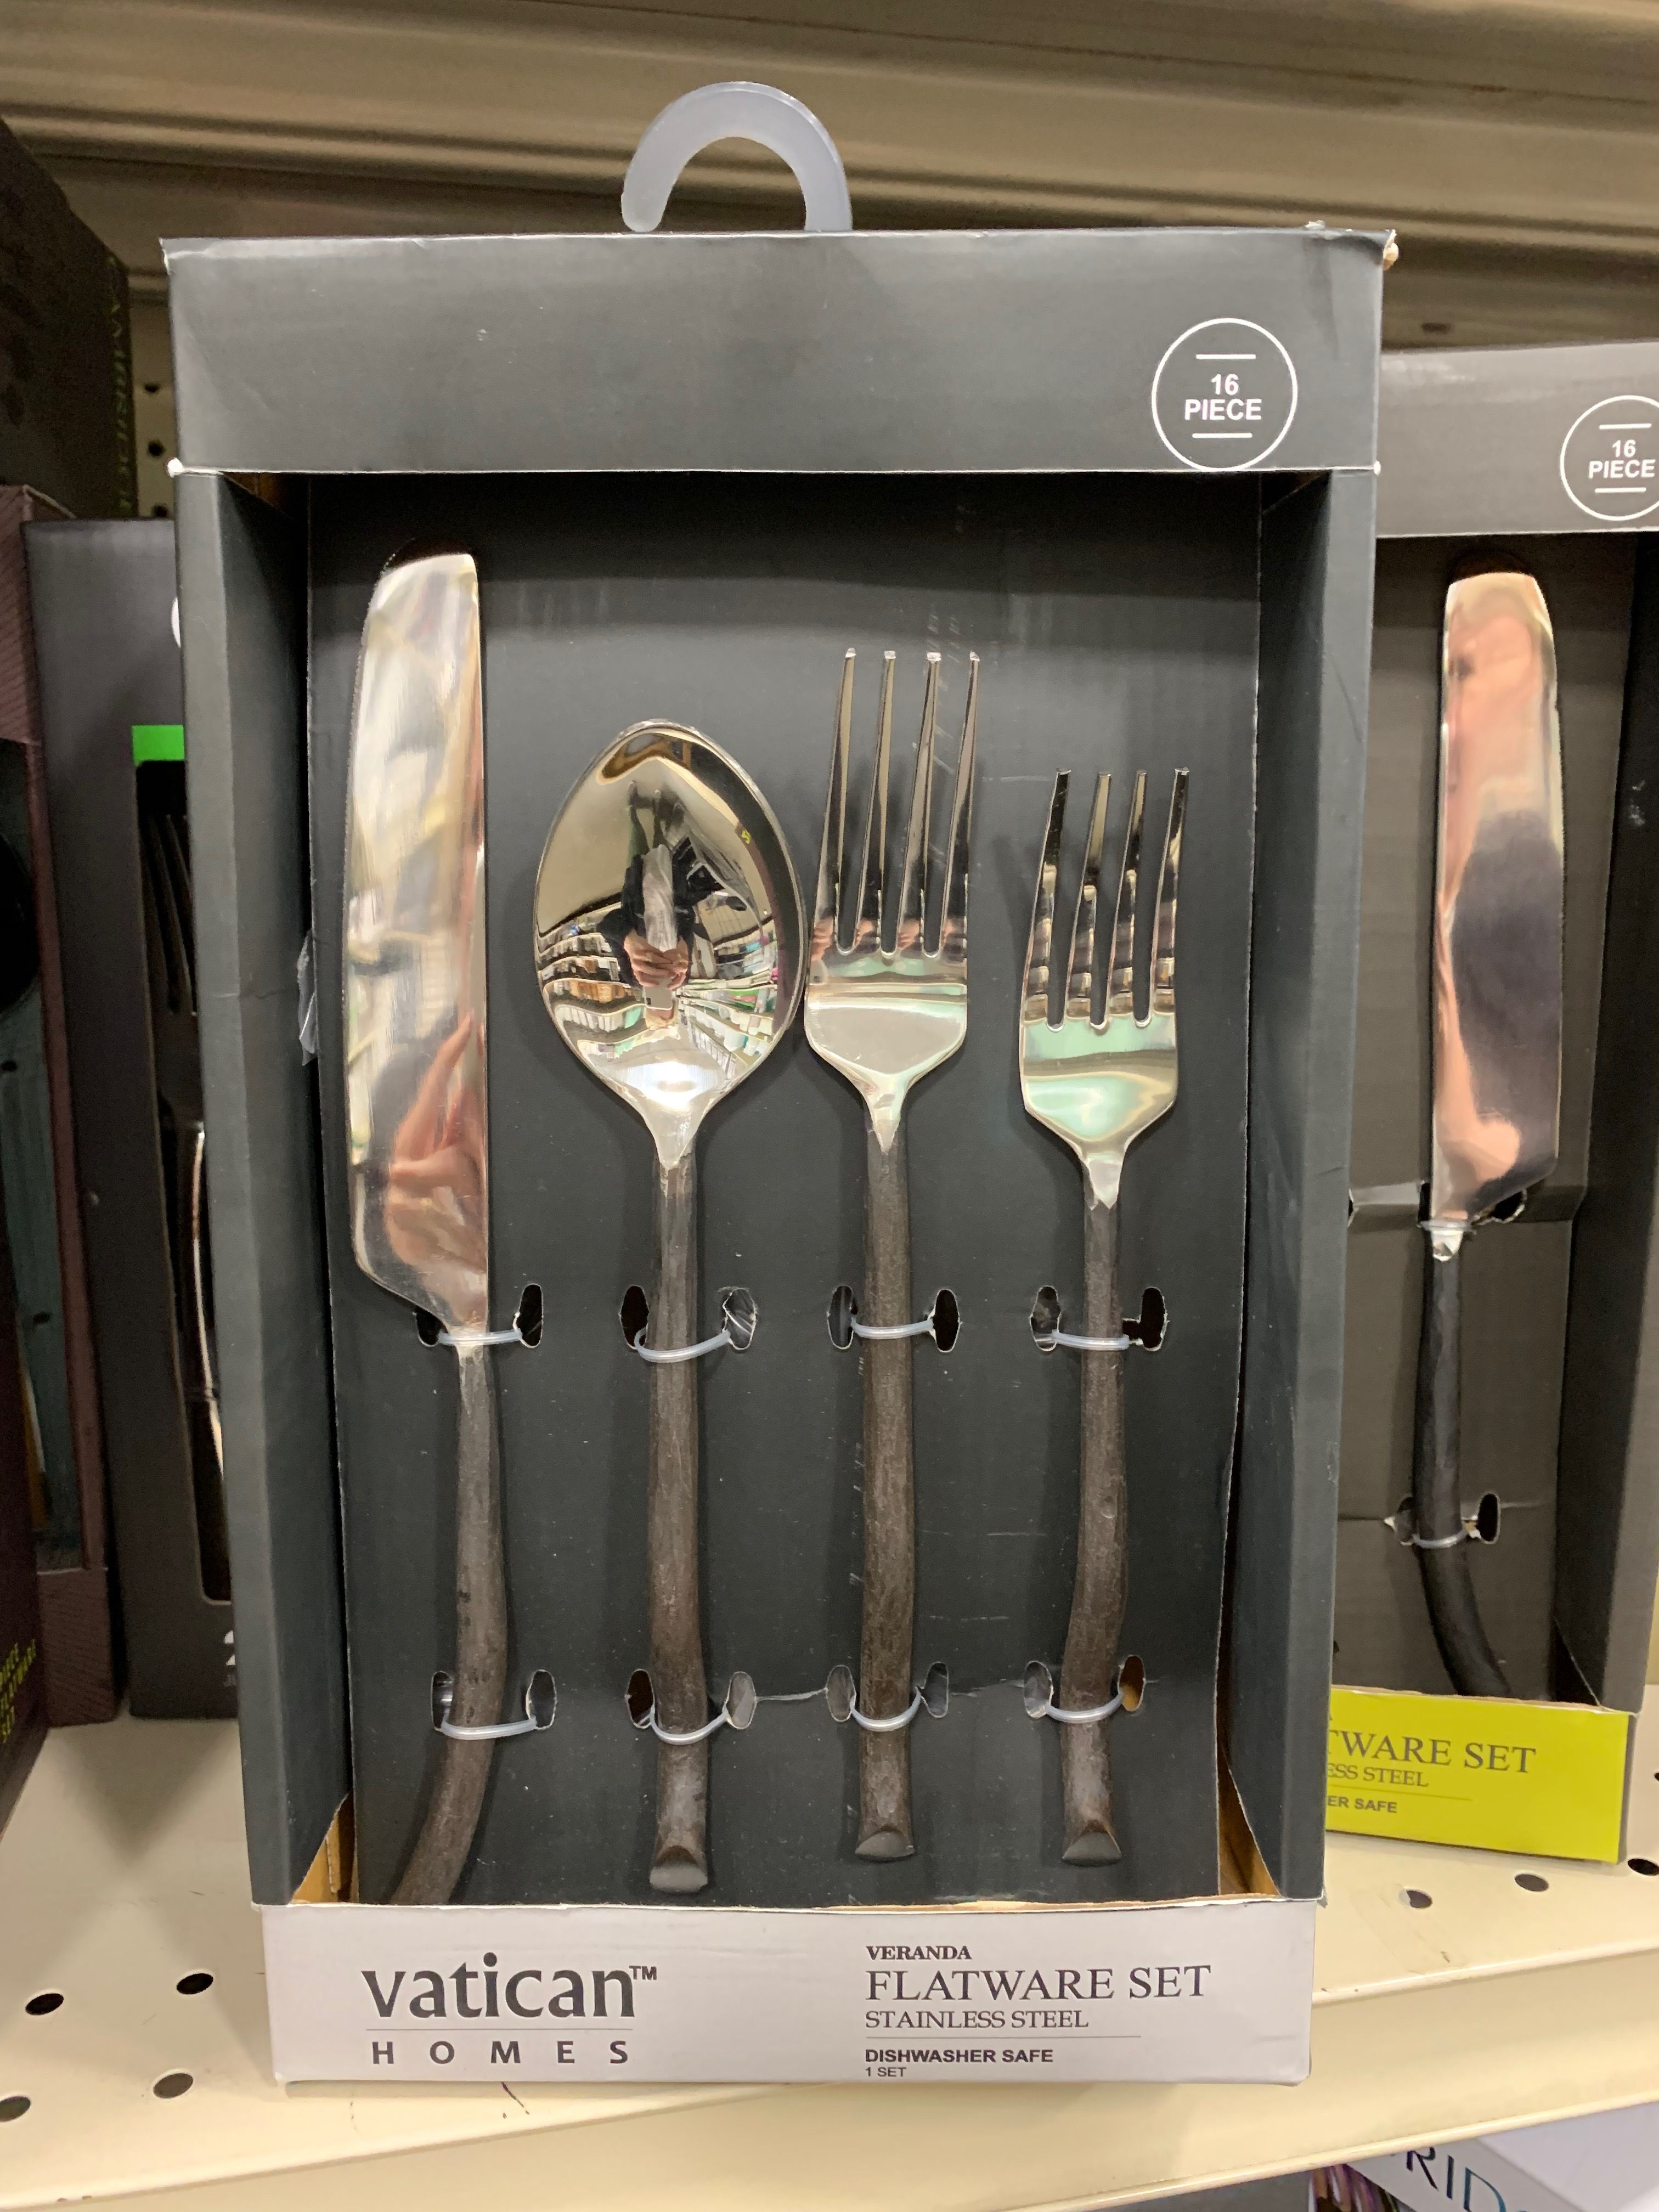 50 At Home Goods Steel House Flatware Set Home Goods